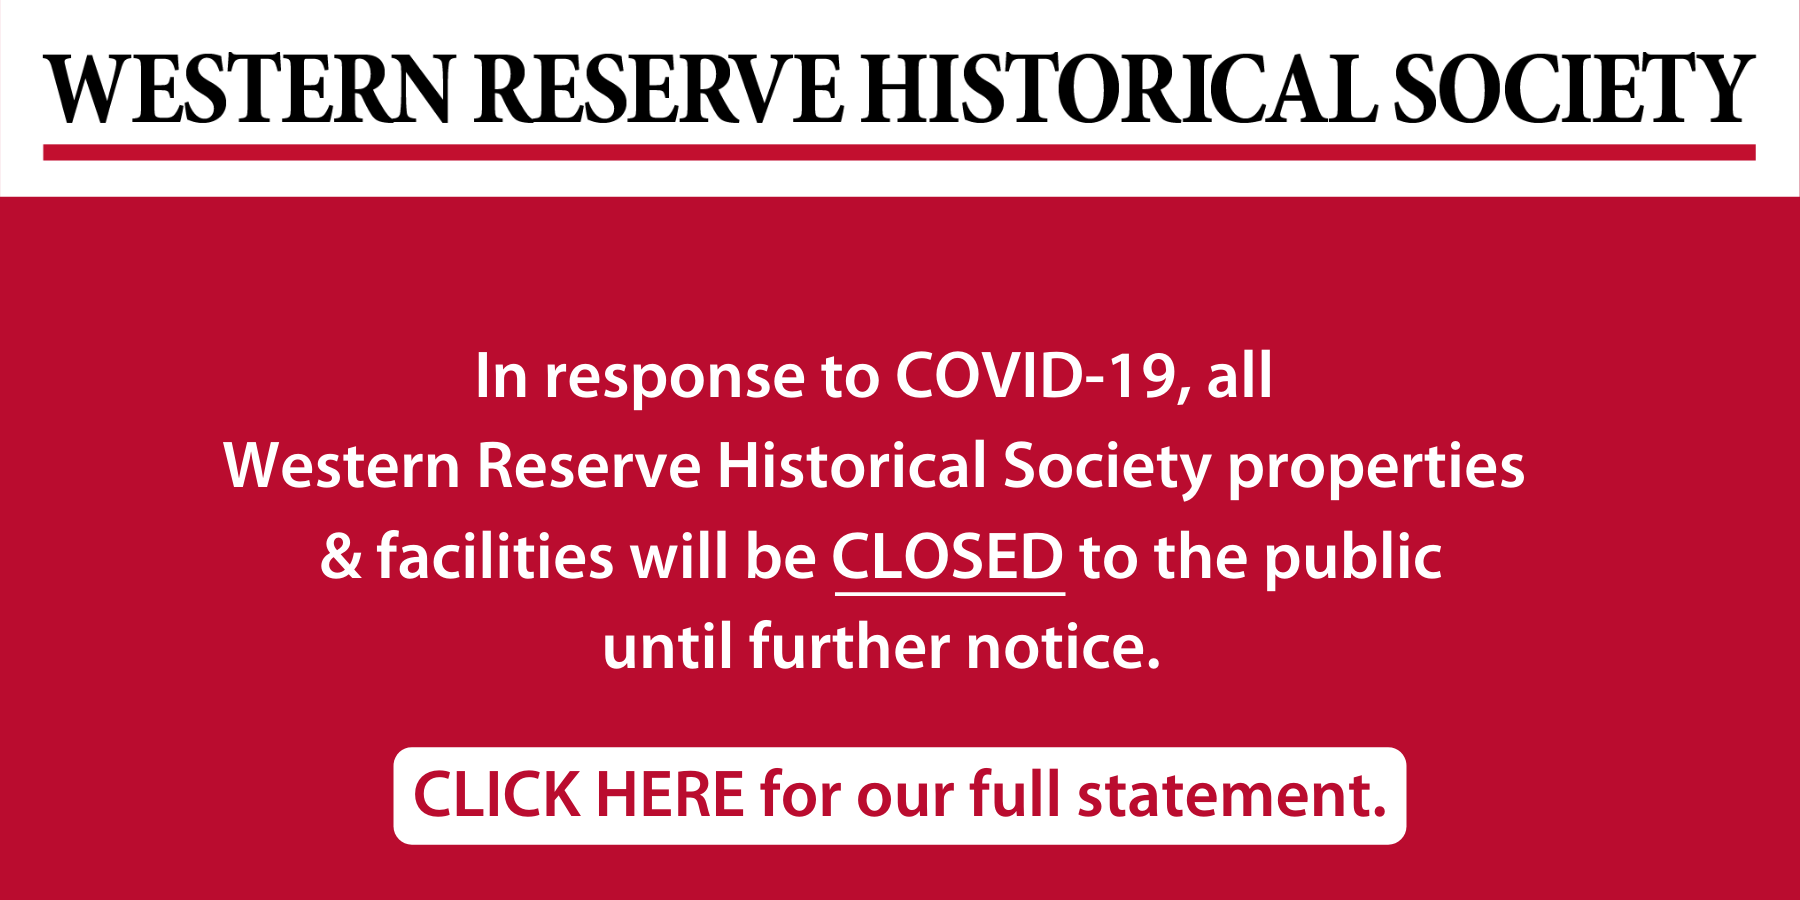 COVID-19 Web Statement 3.19.20